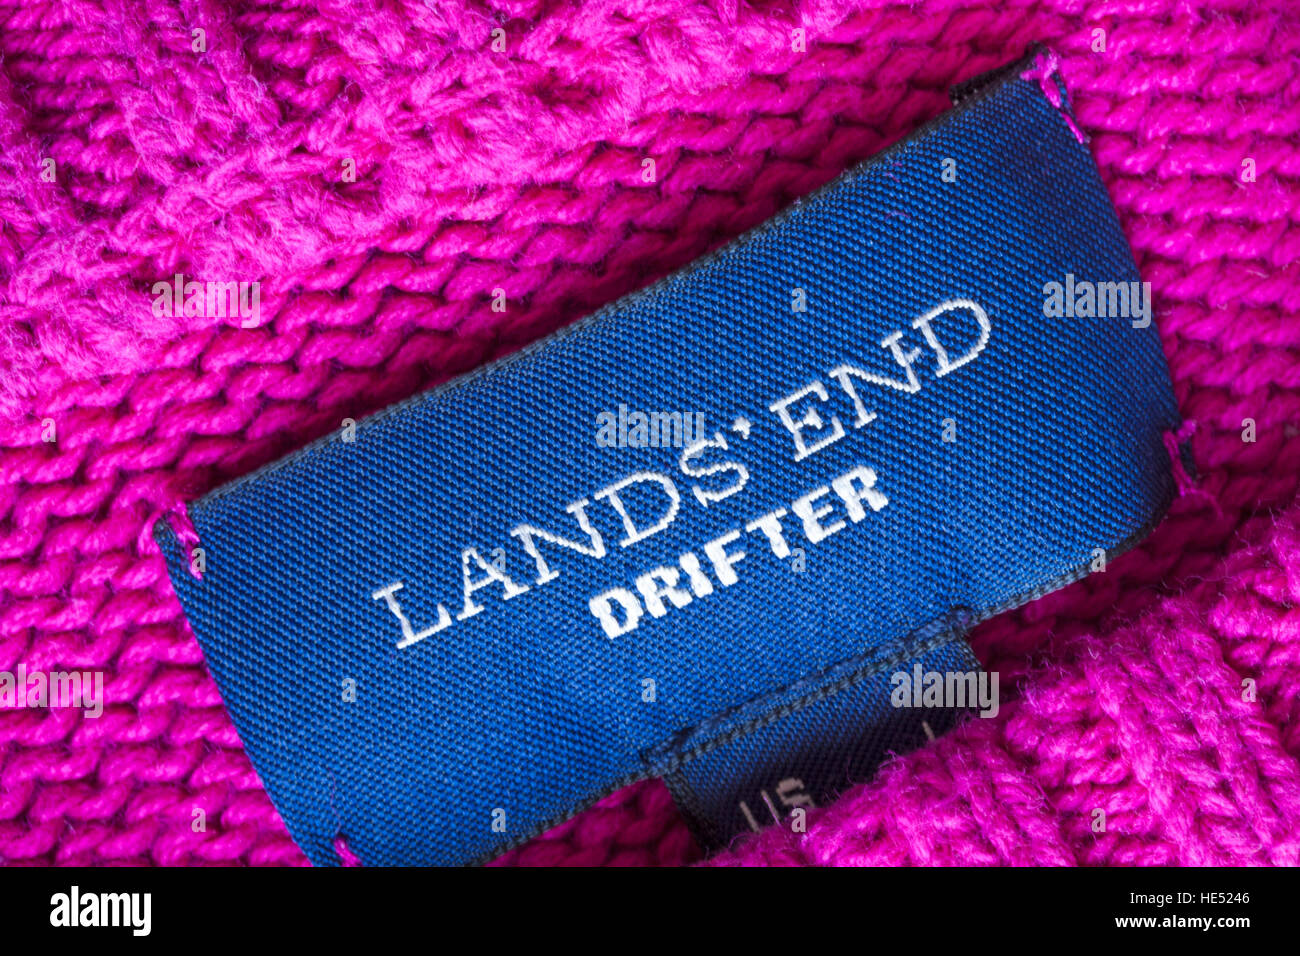 Lands' End Drifter label in pink knitted pattern jumper - Stock Image